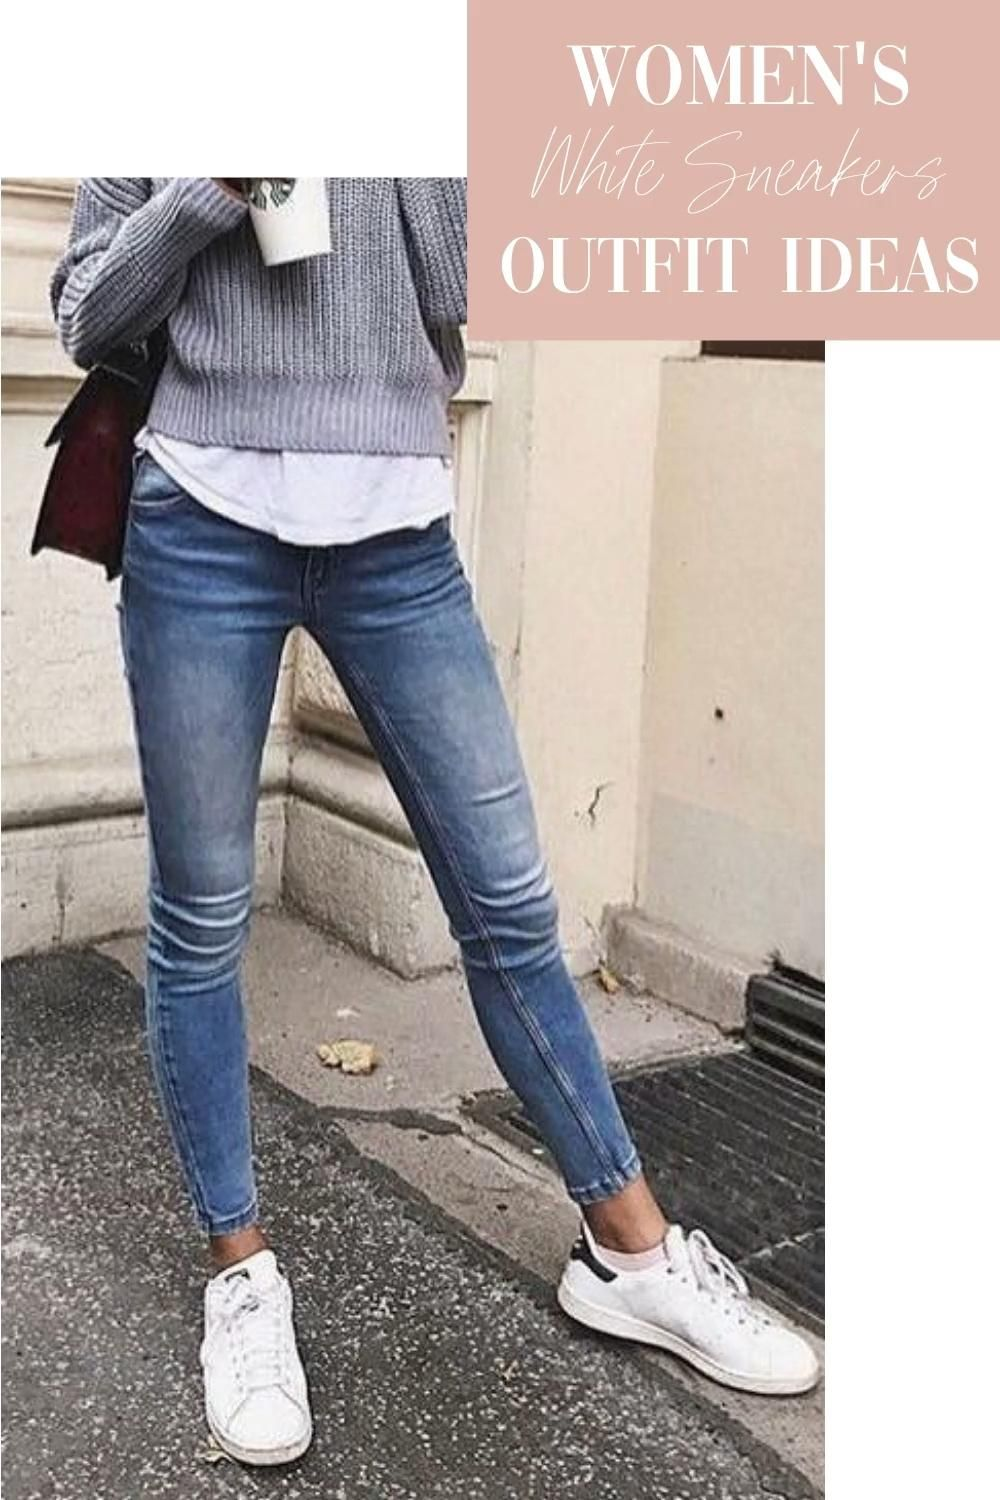 Photo of Women's White Sneakers Outfit Ideas | Sneakers Street Style | Chic Styles